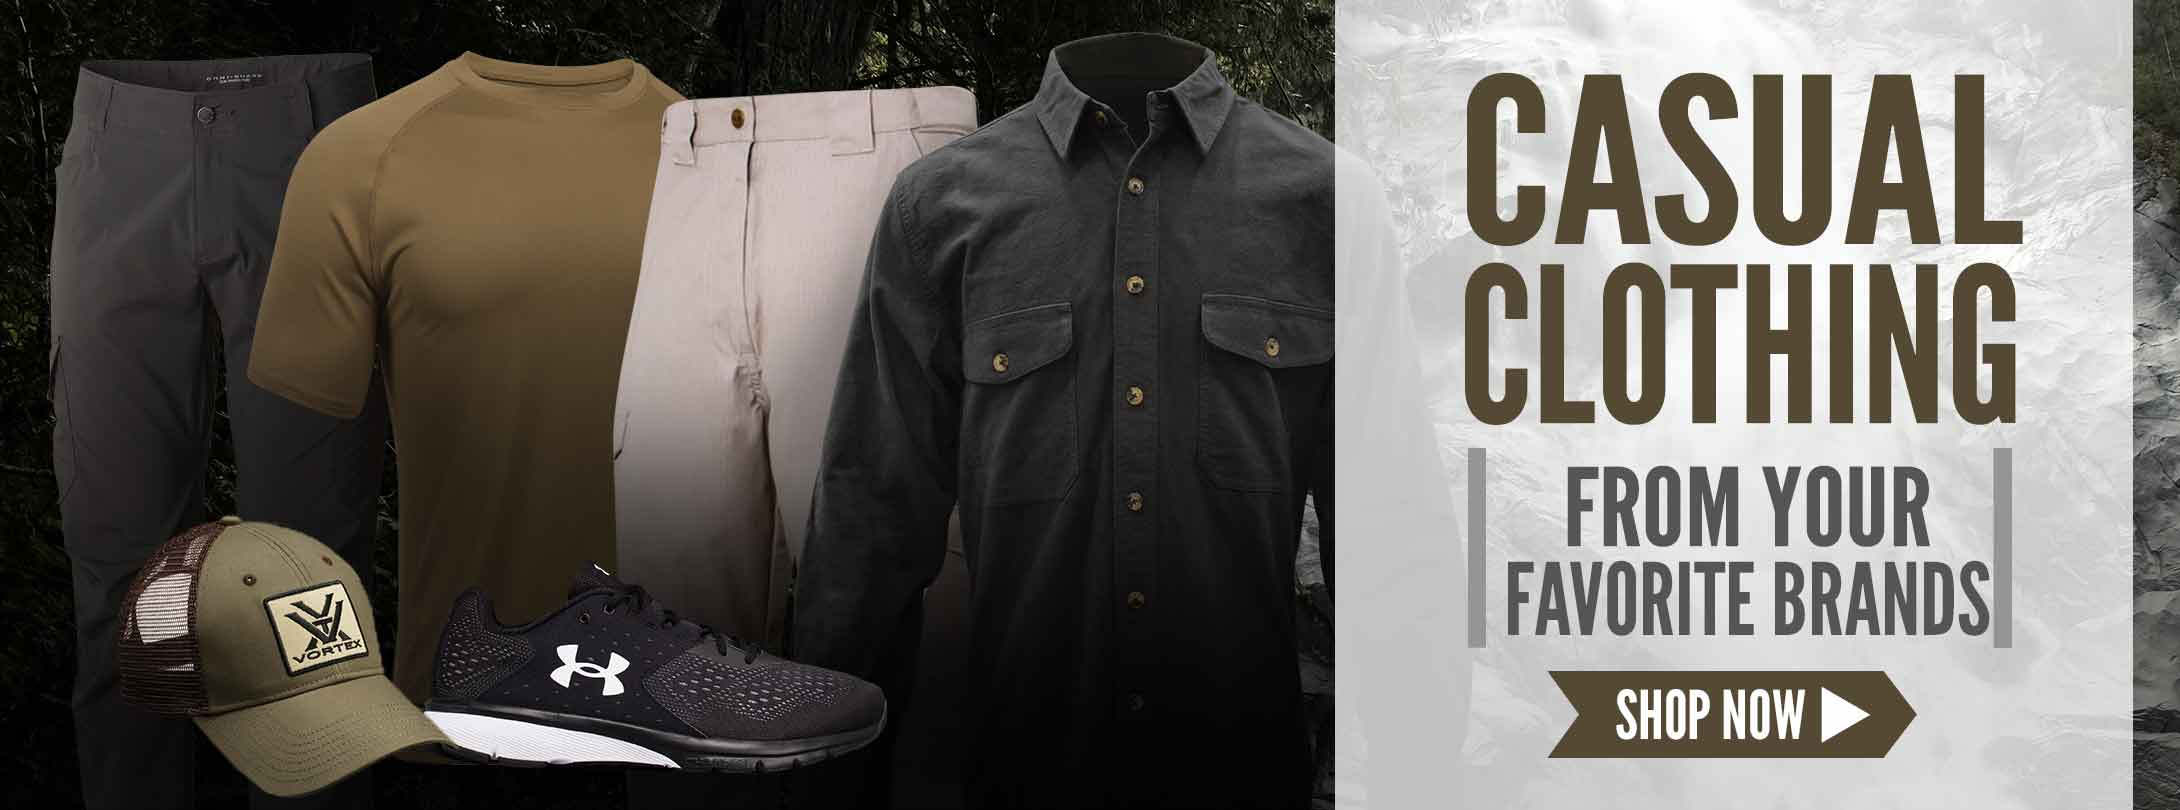 Casual Clothing & Footwear From Your Favorite Brands